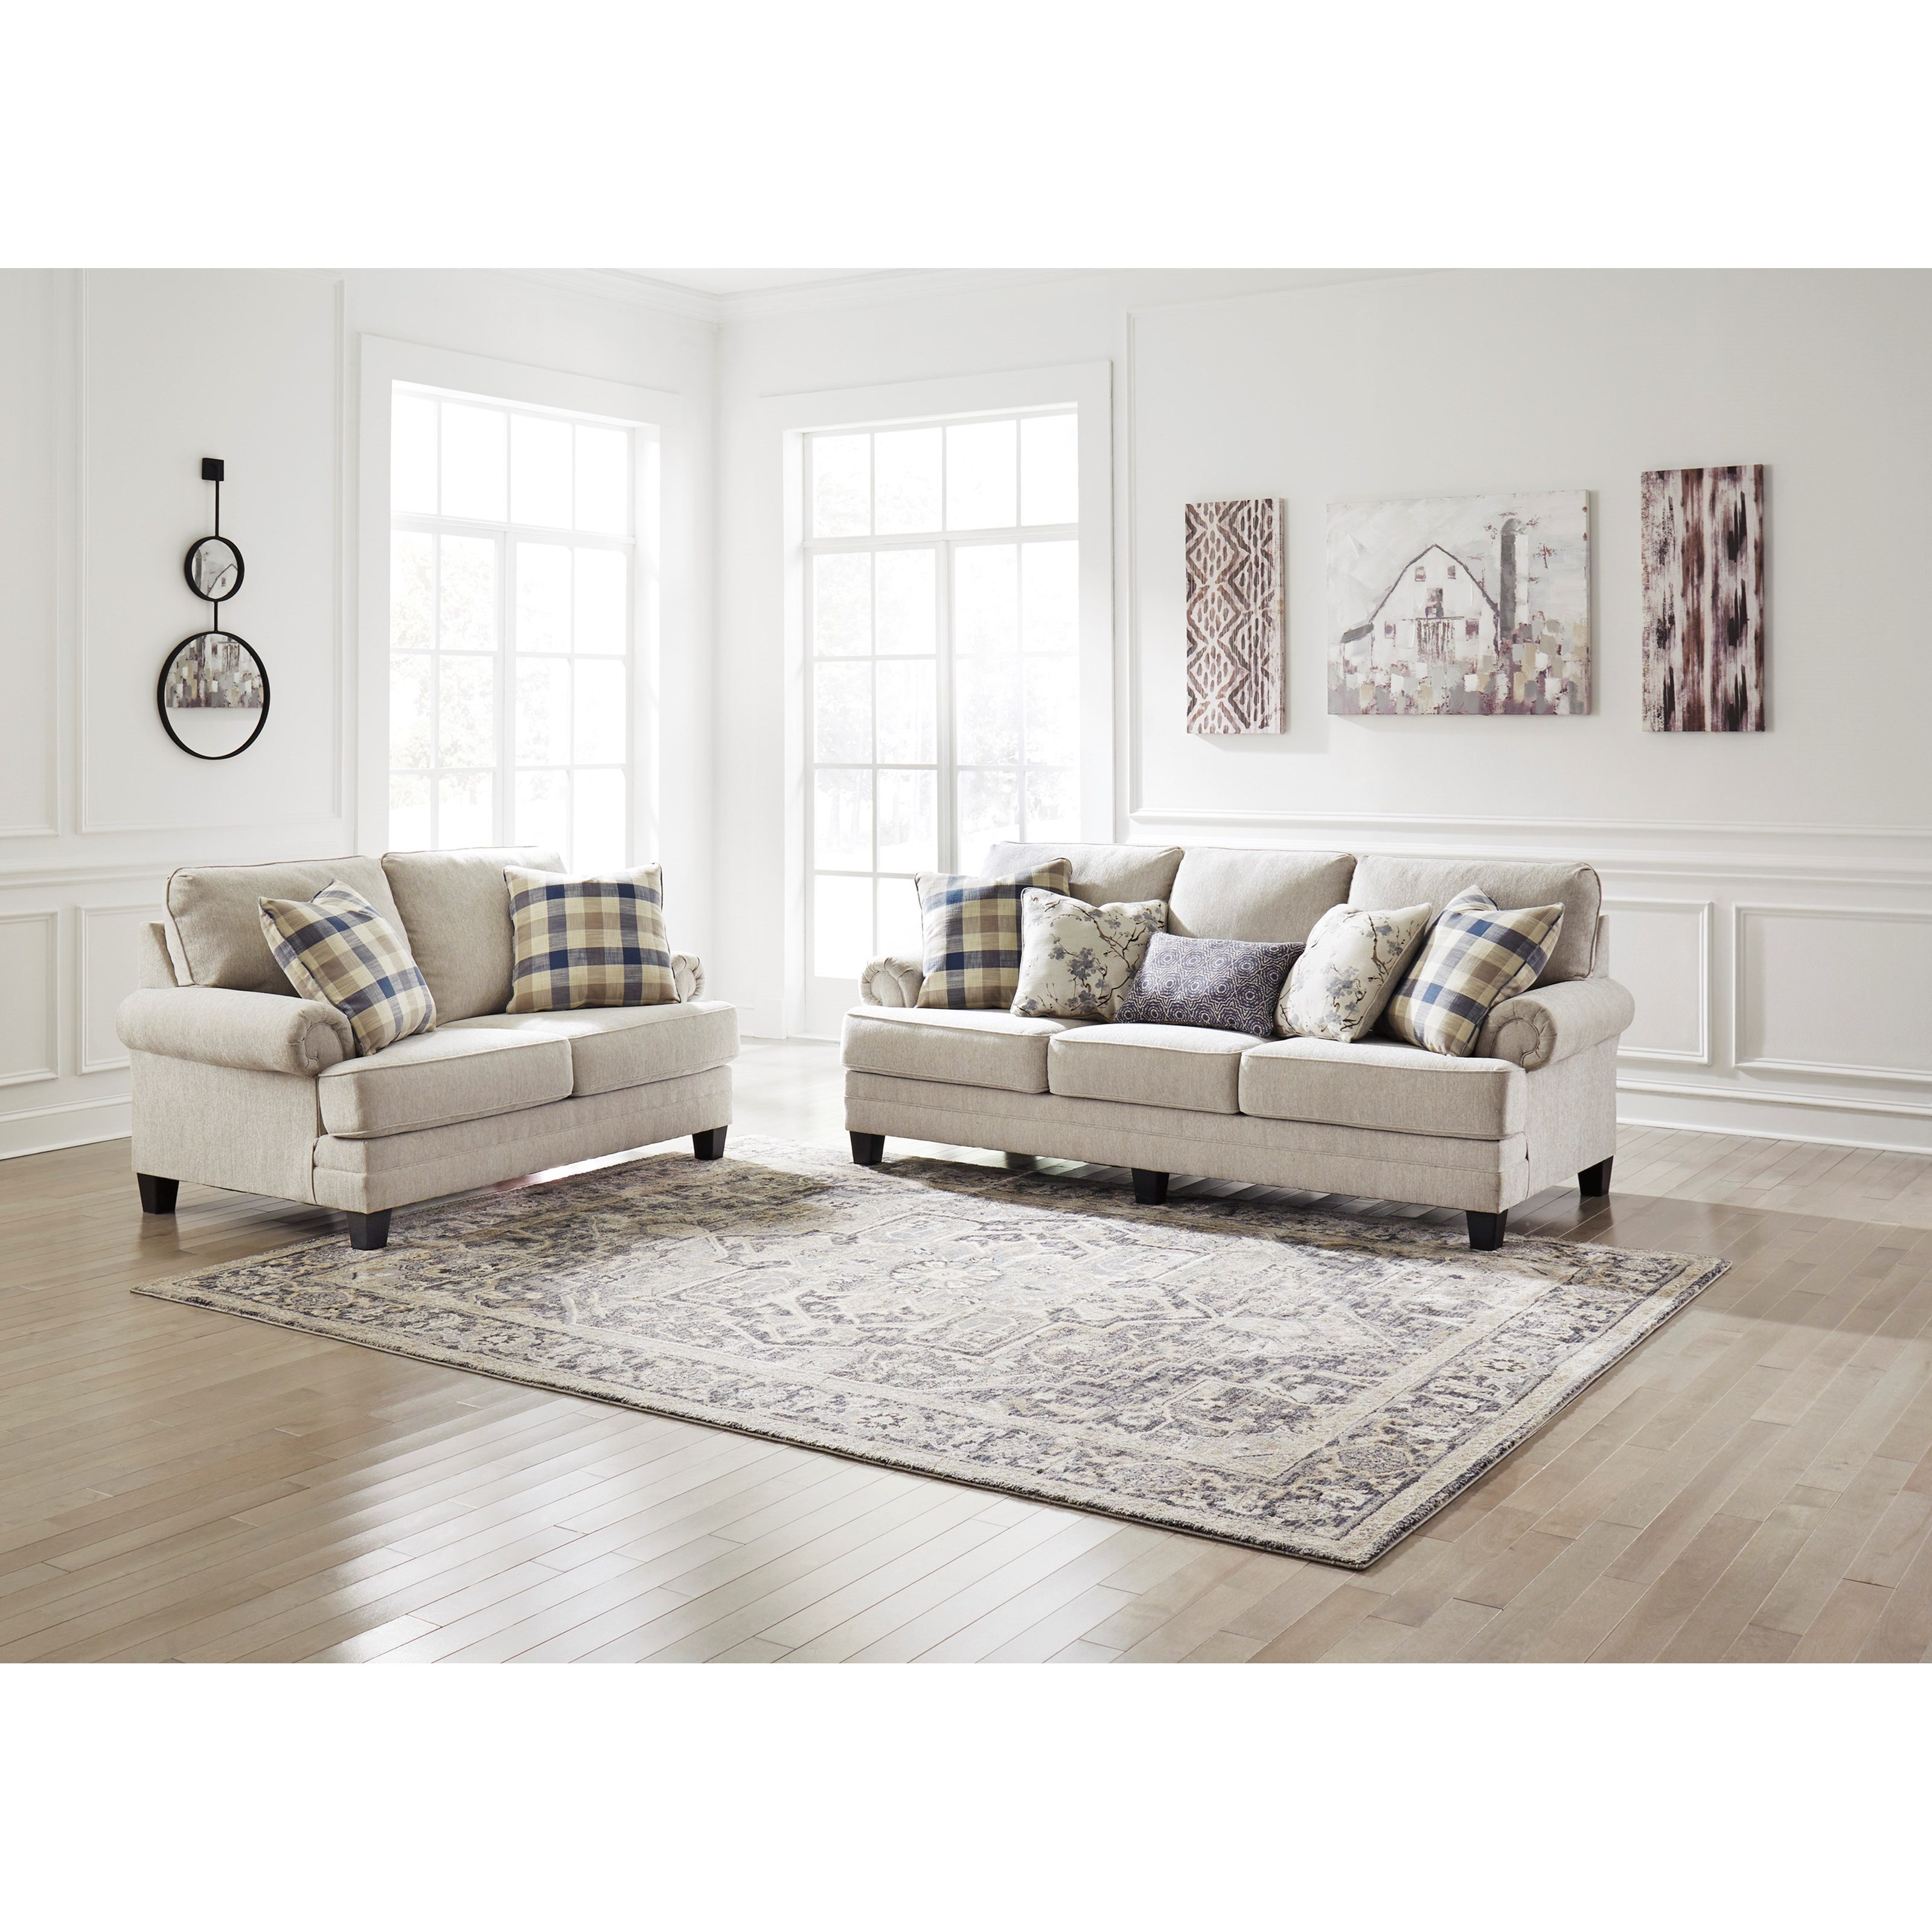 Meggett Living Room Group by Benchcraft at Rooms and Rest